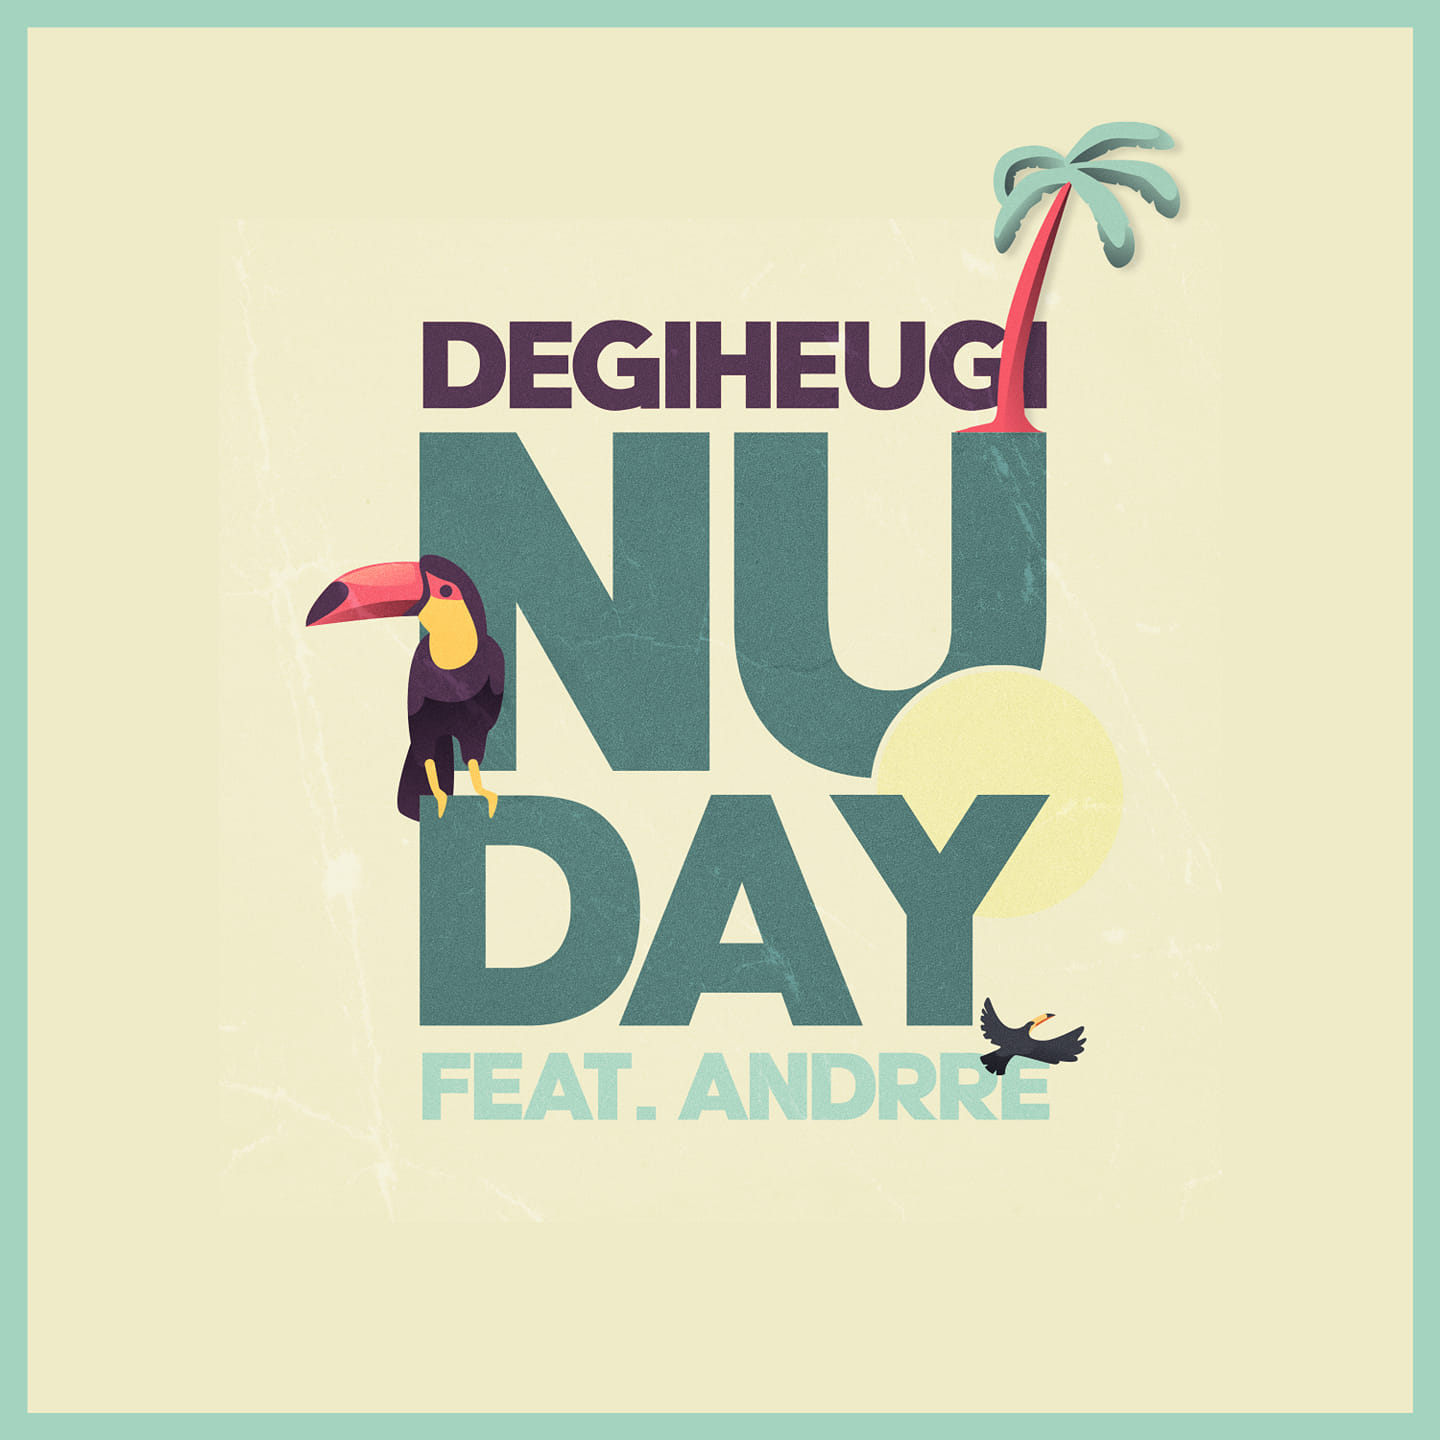 Degiheugi ft. Andrre descubren 'Nuday' degiheugi feat ANDRRE Nuday